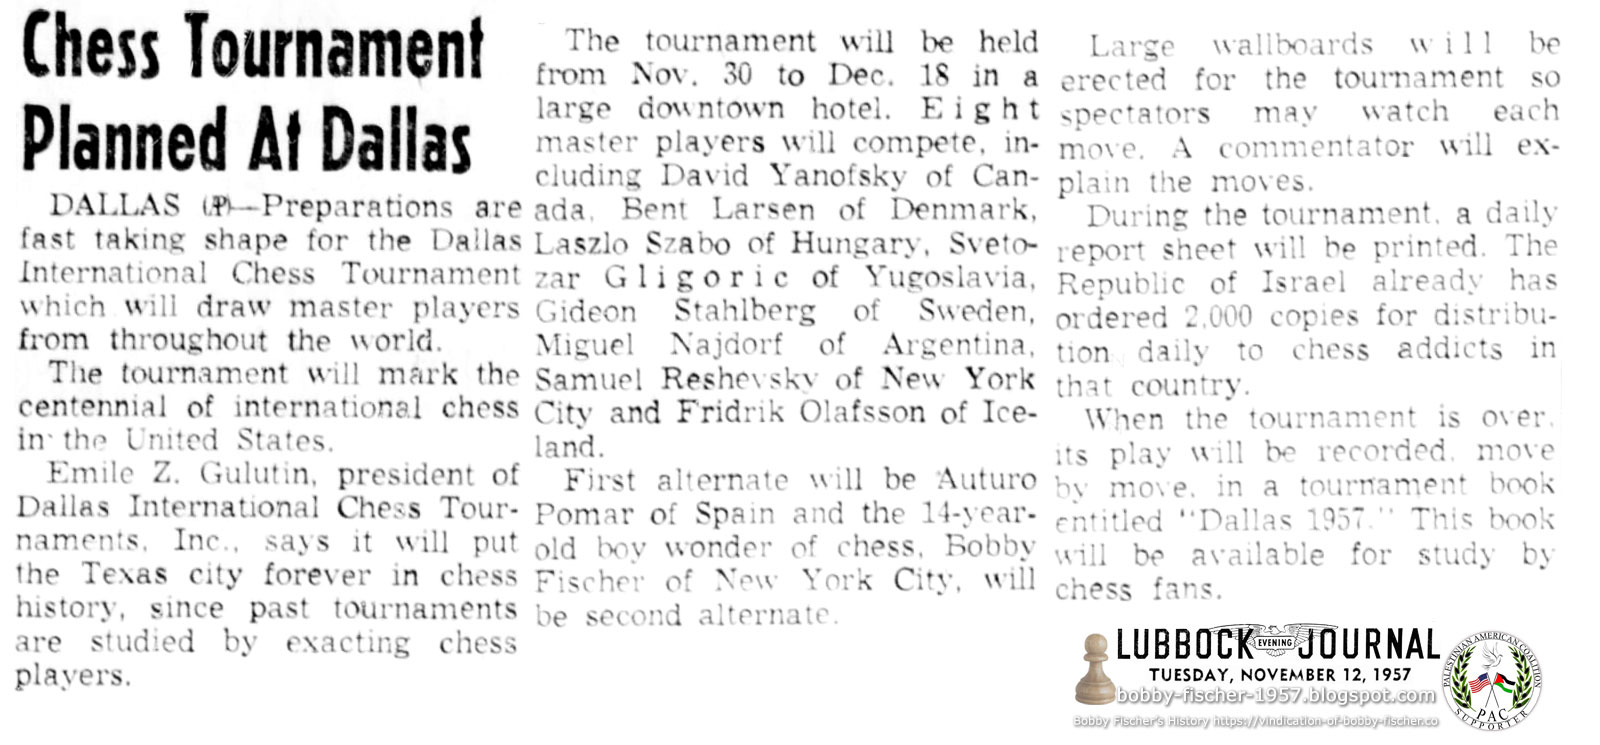 Chess Tournament Planned At Dallas